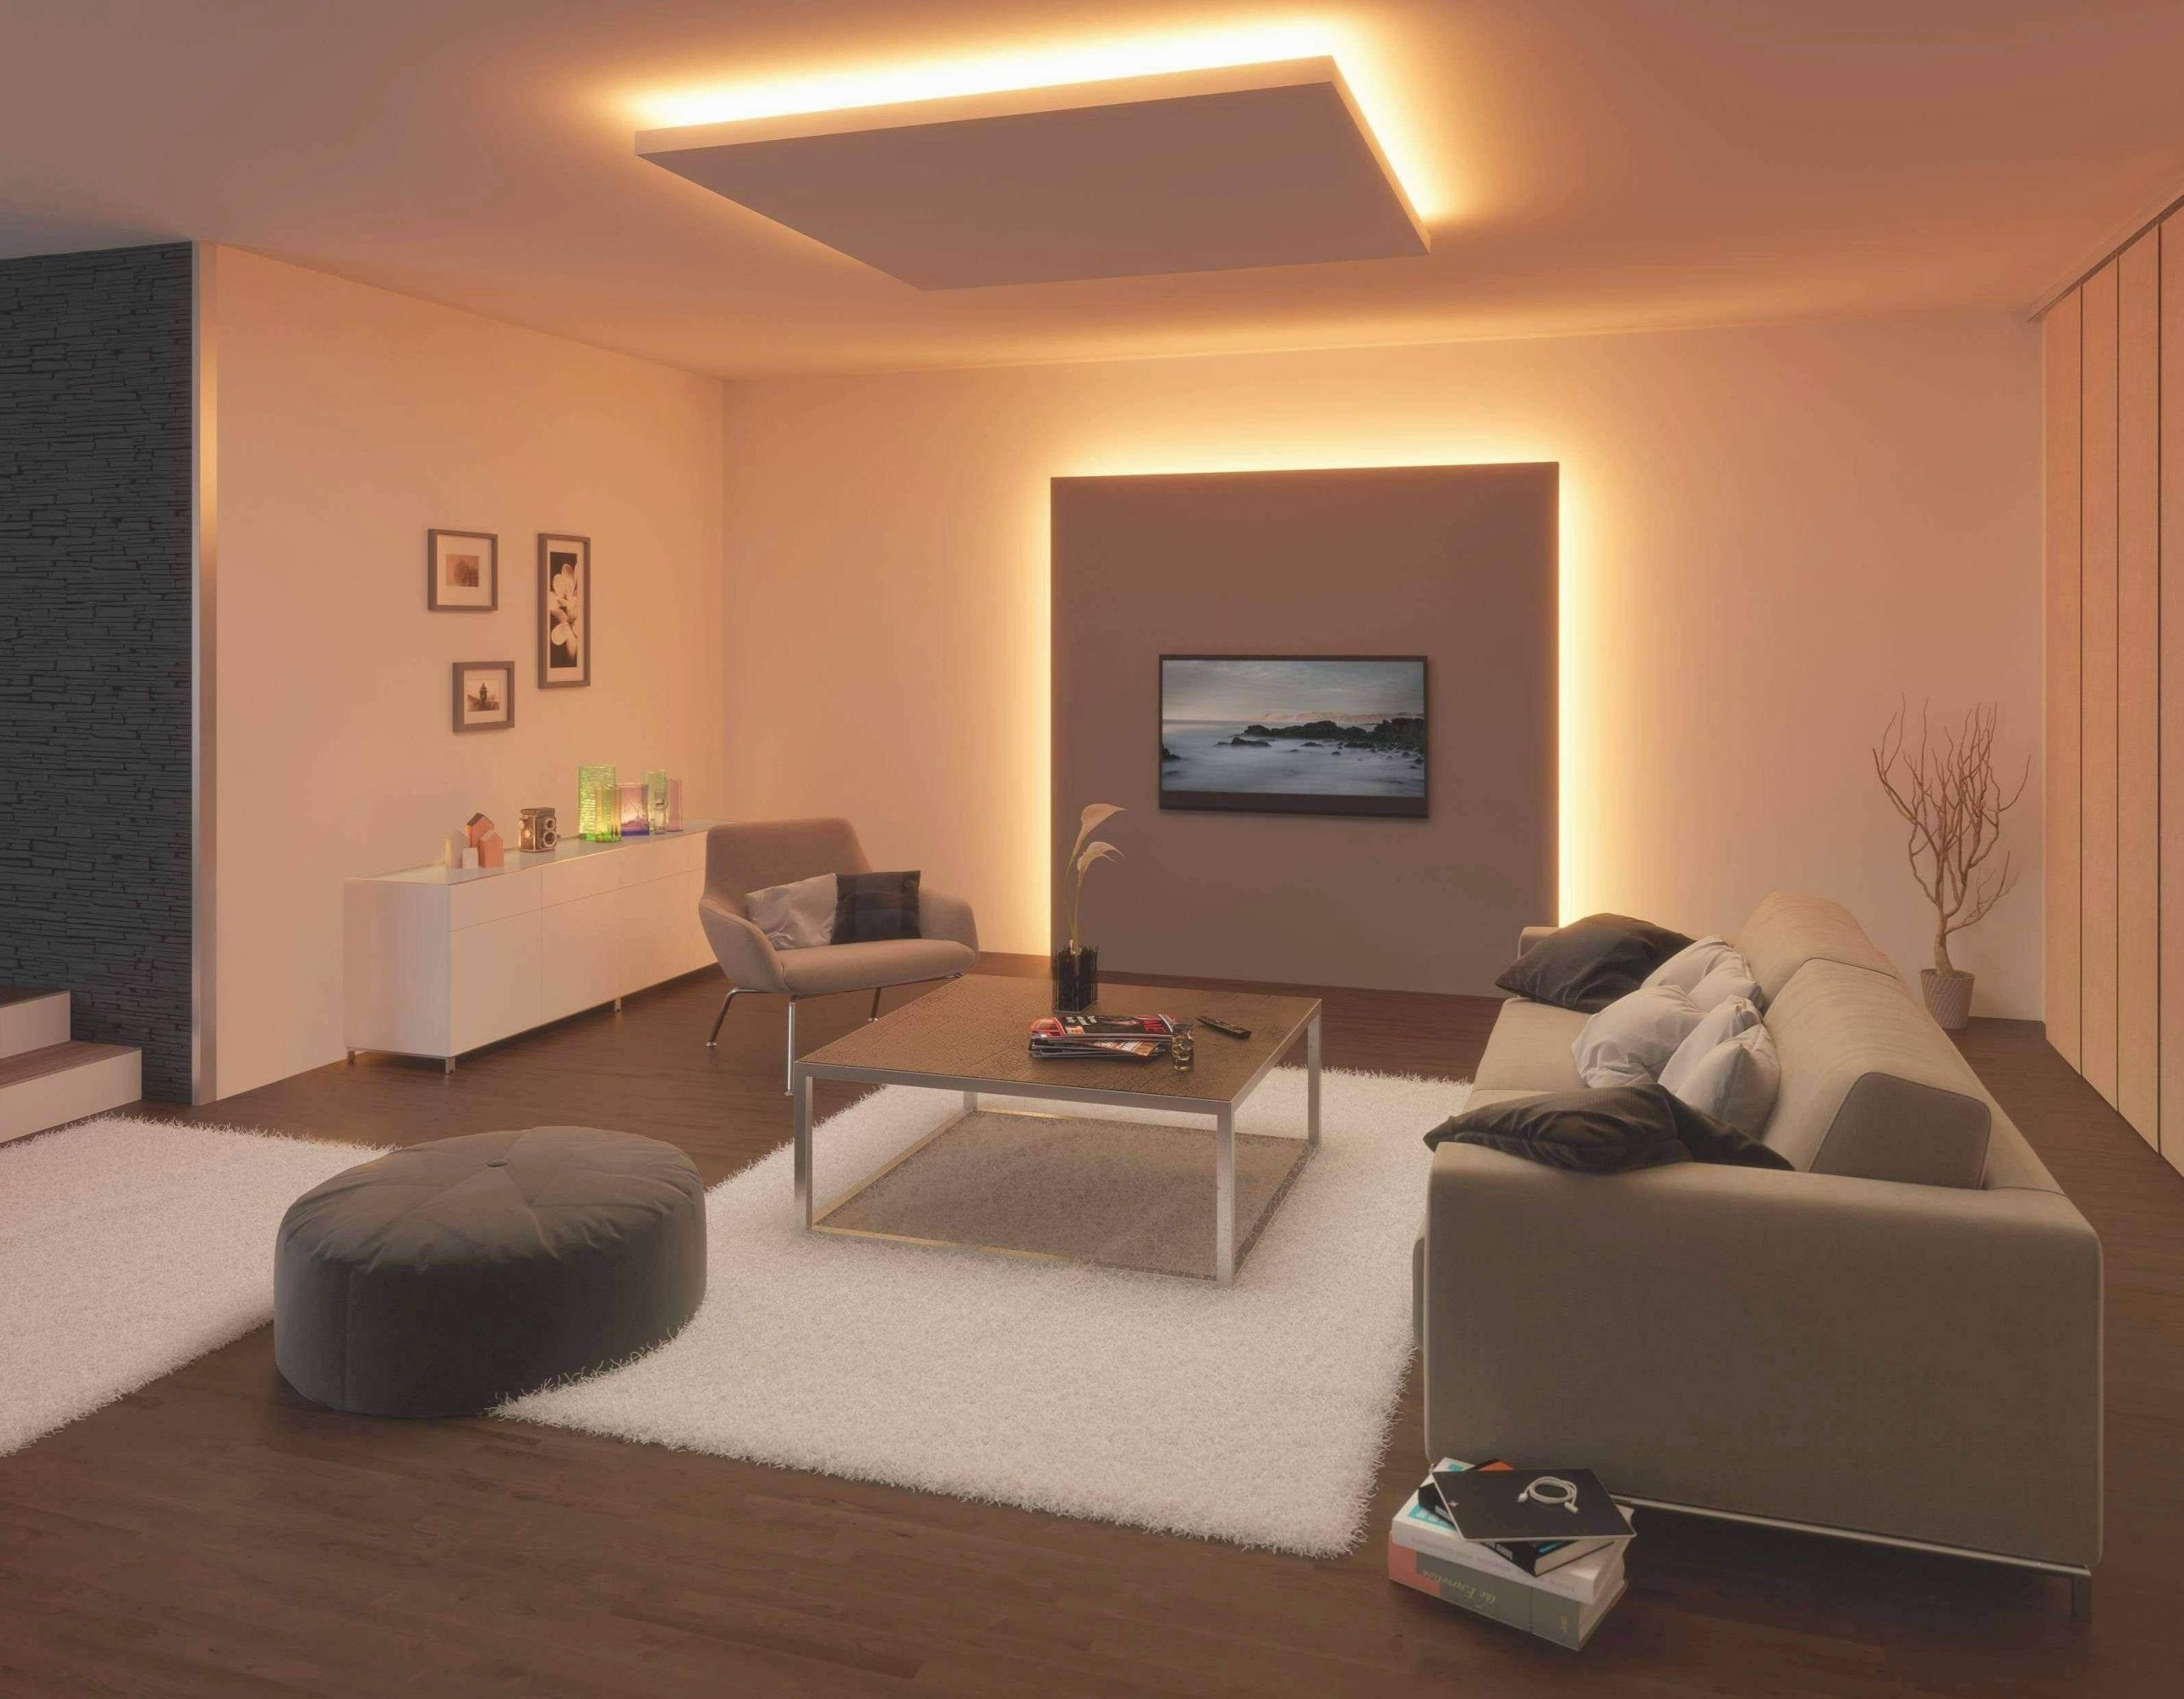 name that living room inspirational fresh wohnzimmer couch modern ideas of name that living room